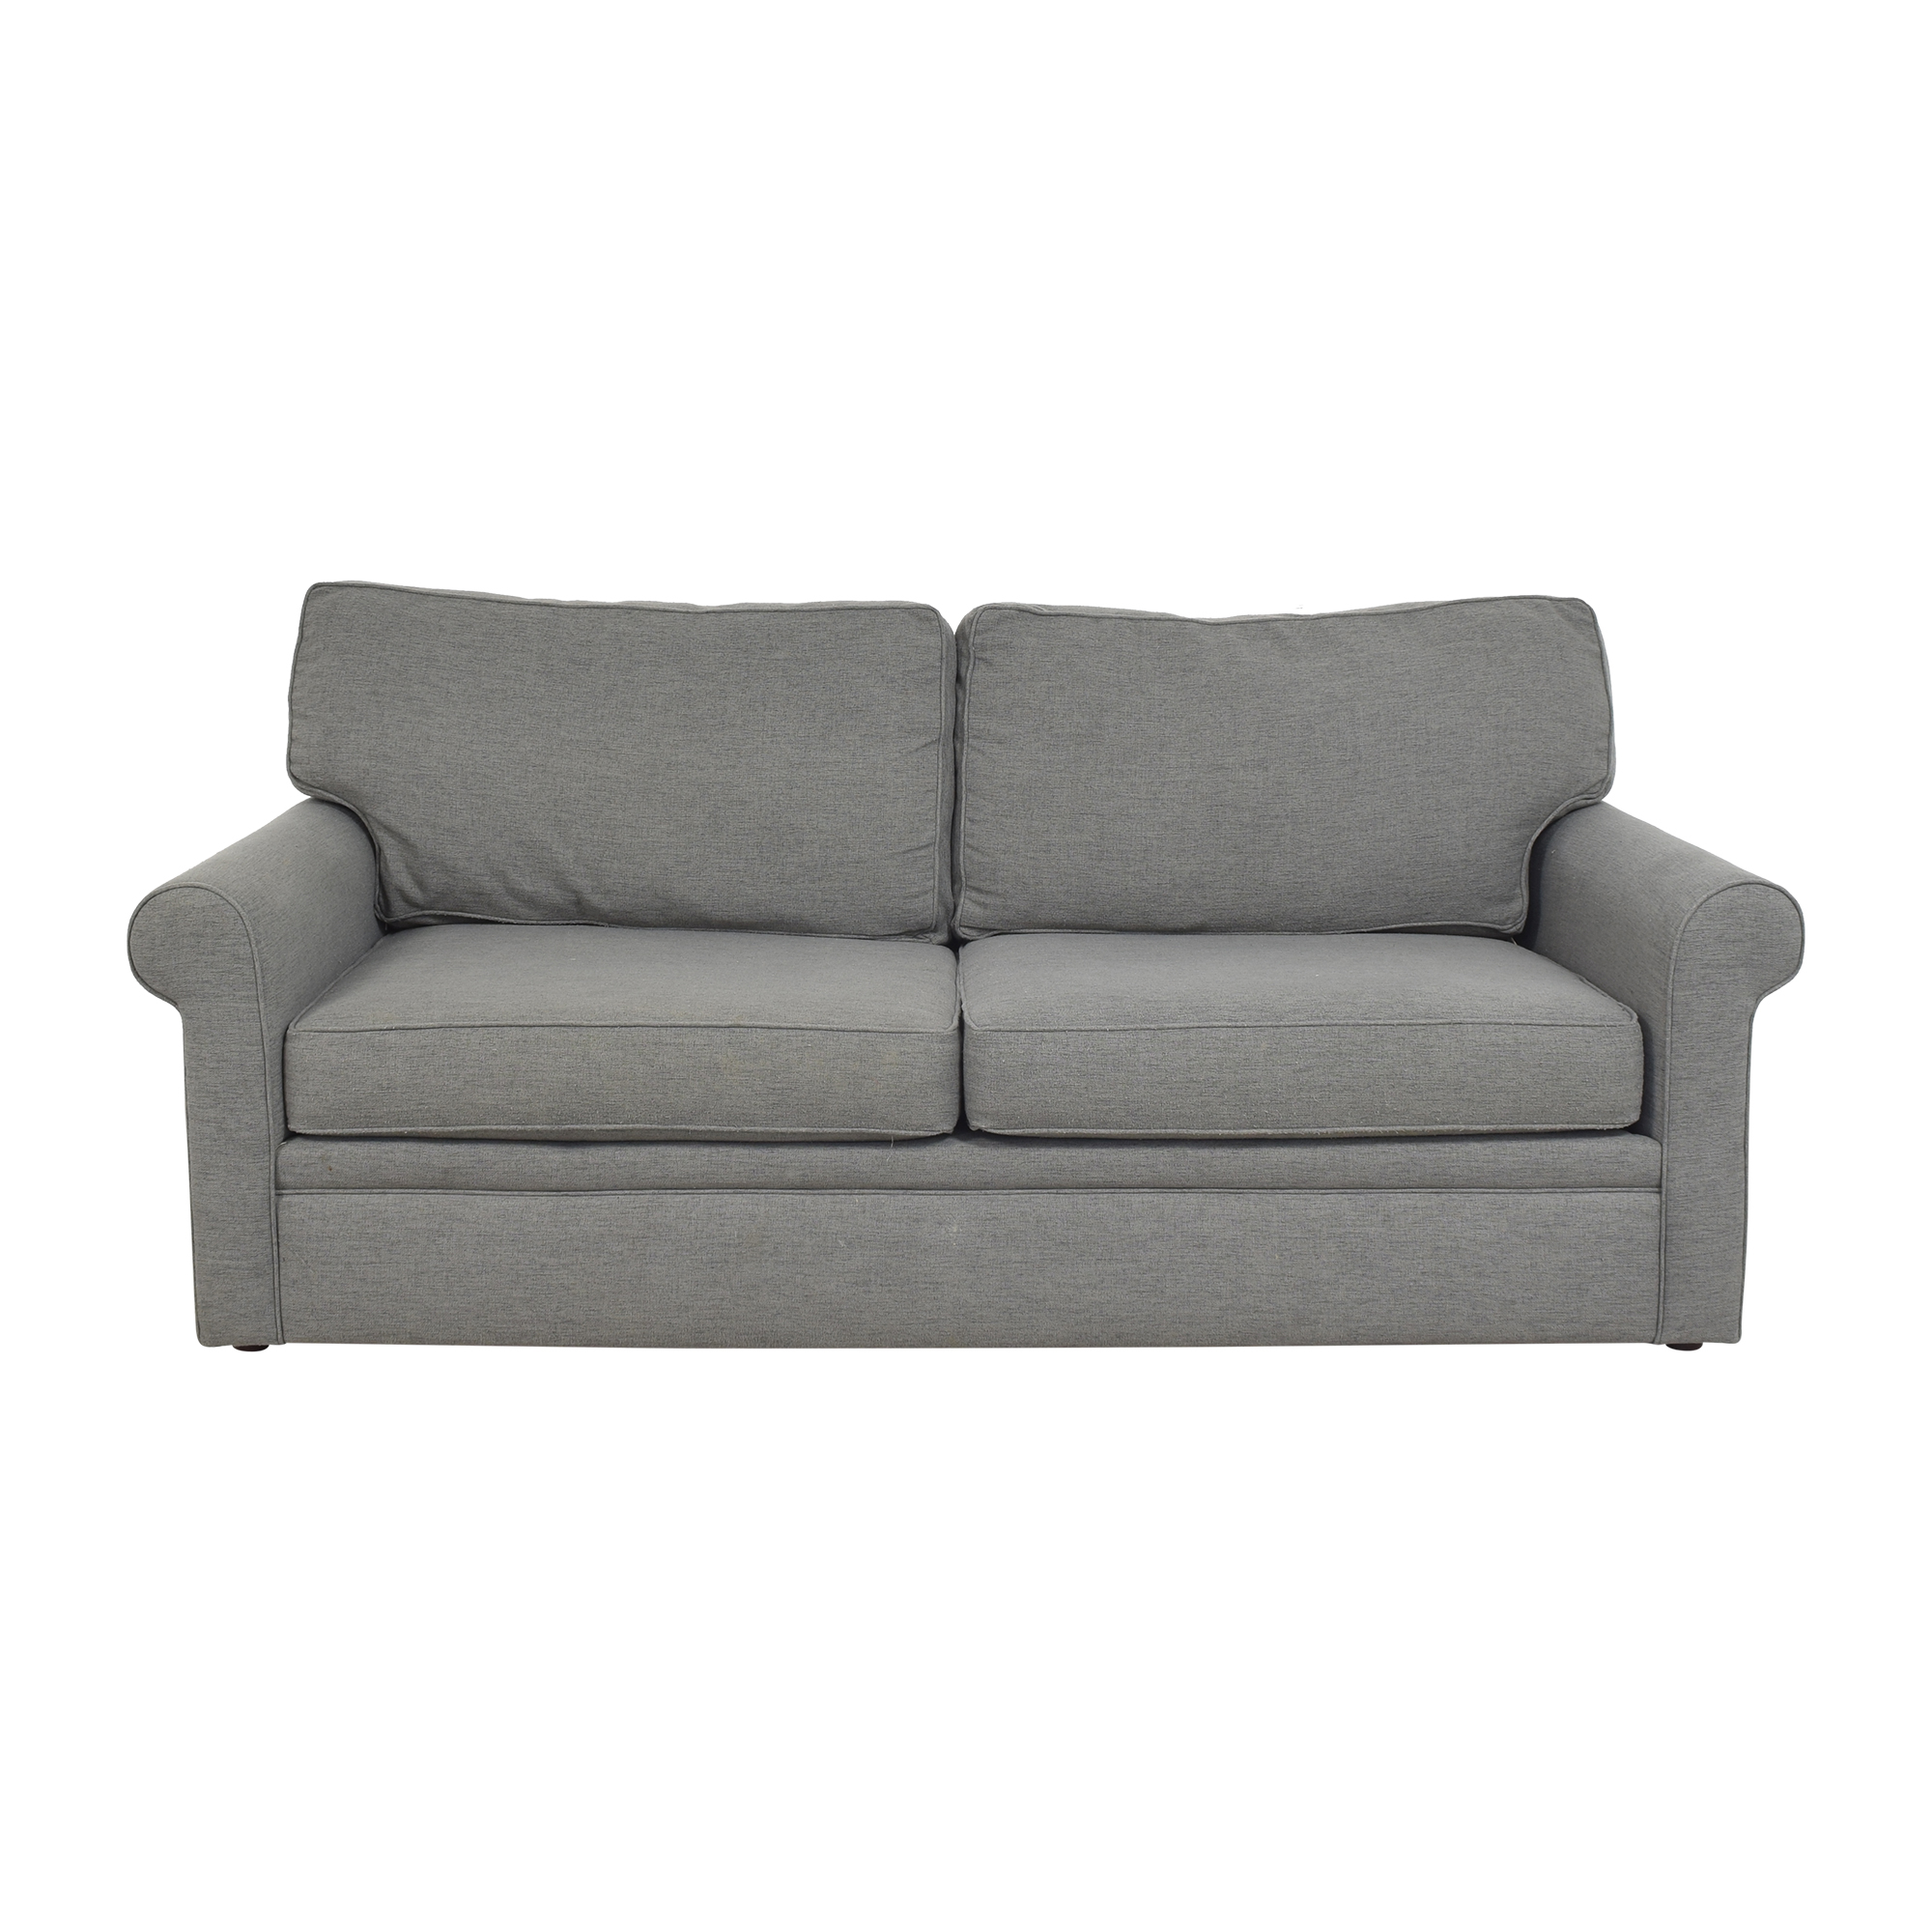 Two Cushion Sofa used